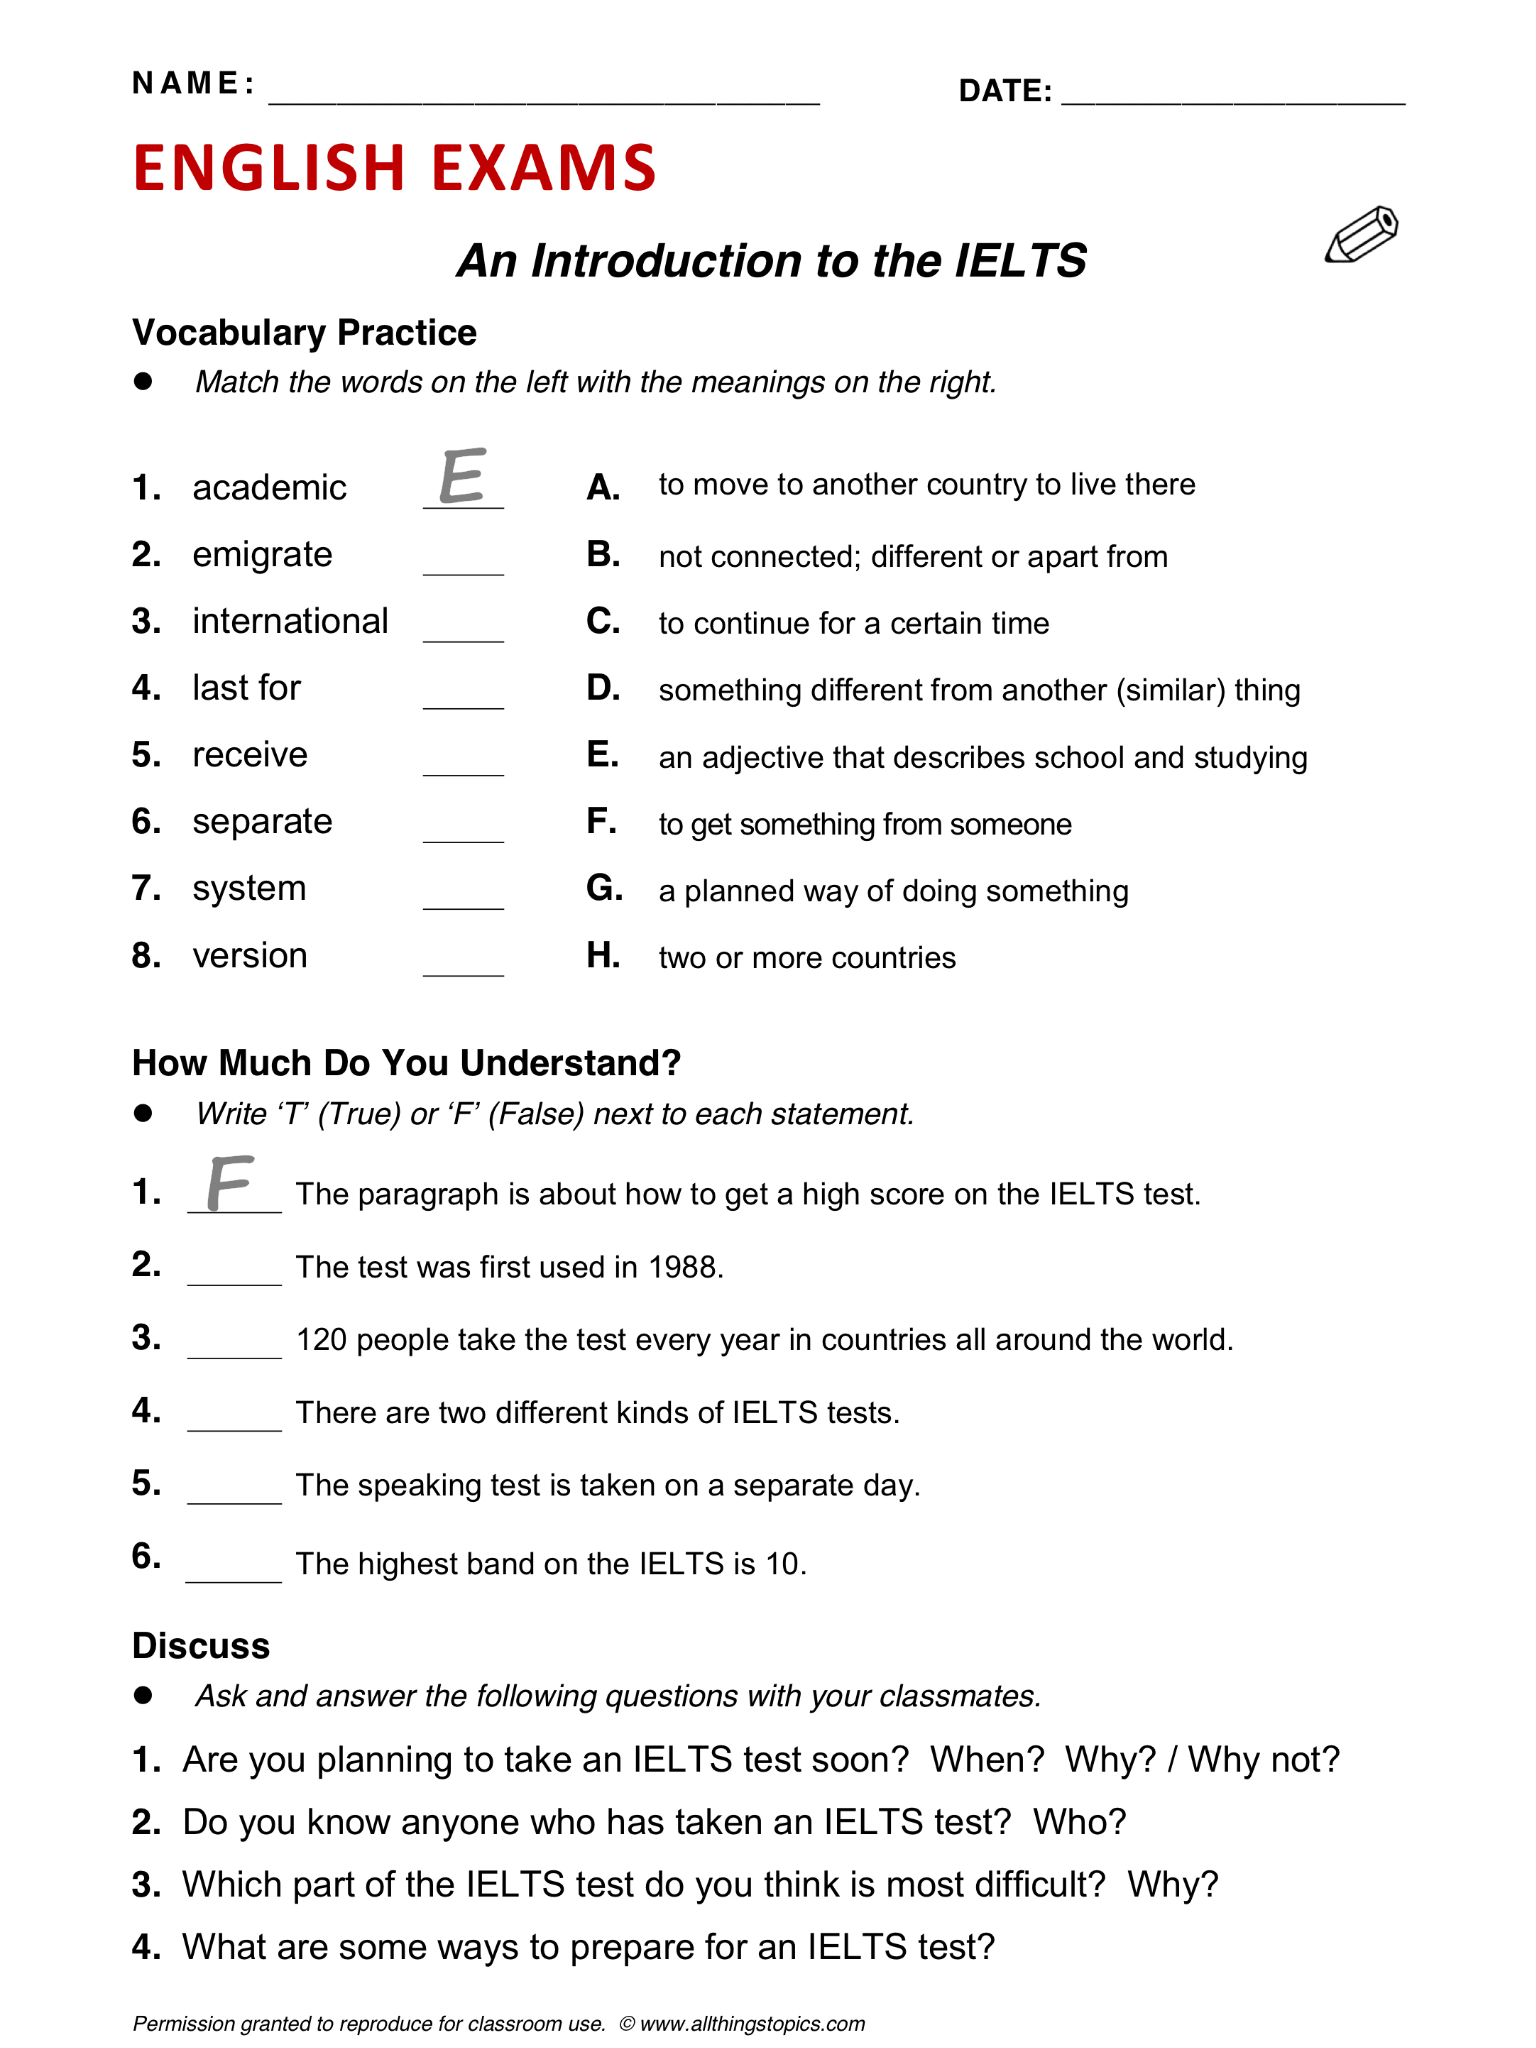 English Grammar Worksheet For Adult Learners